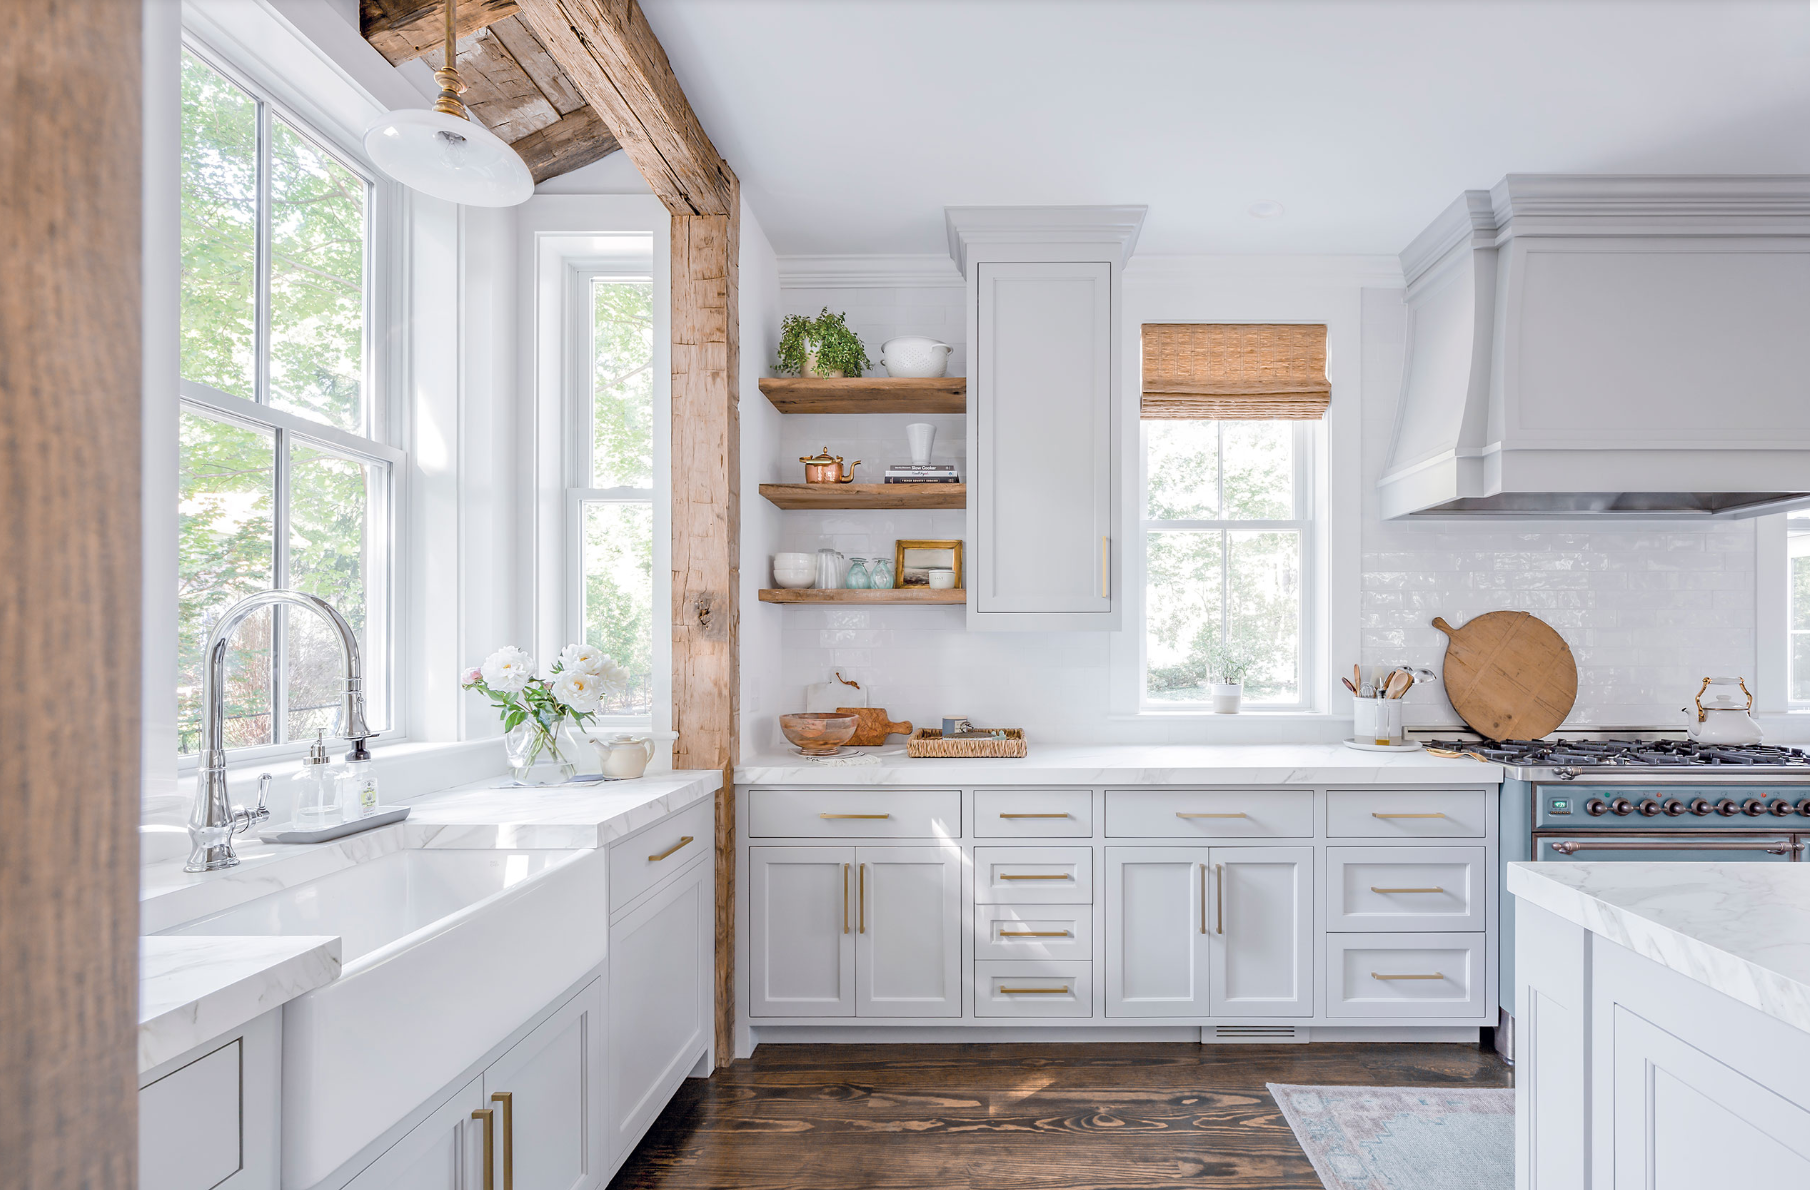 The 15 Most Beautiful Modern Farmhouse Kitchens On Pinterest Sanctuary Home Decor In 2020 Modern Farmhouse Kitchens Kitchen Renovation Kitchen Remodel